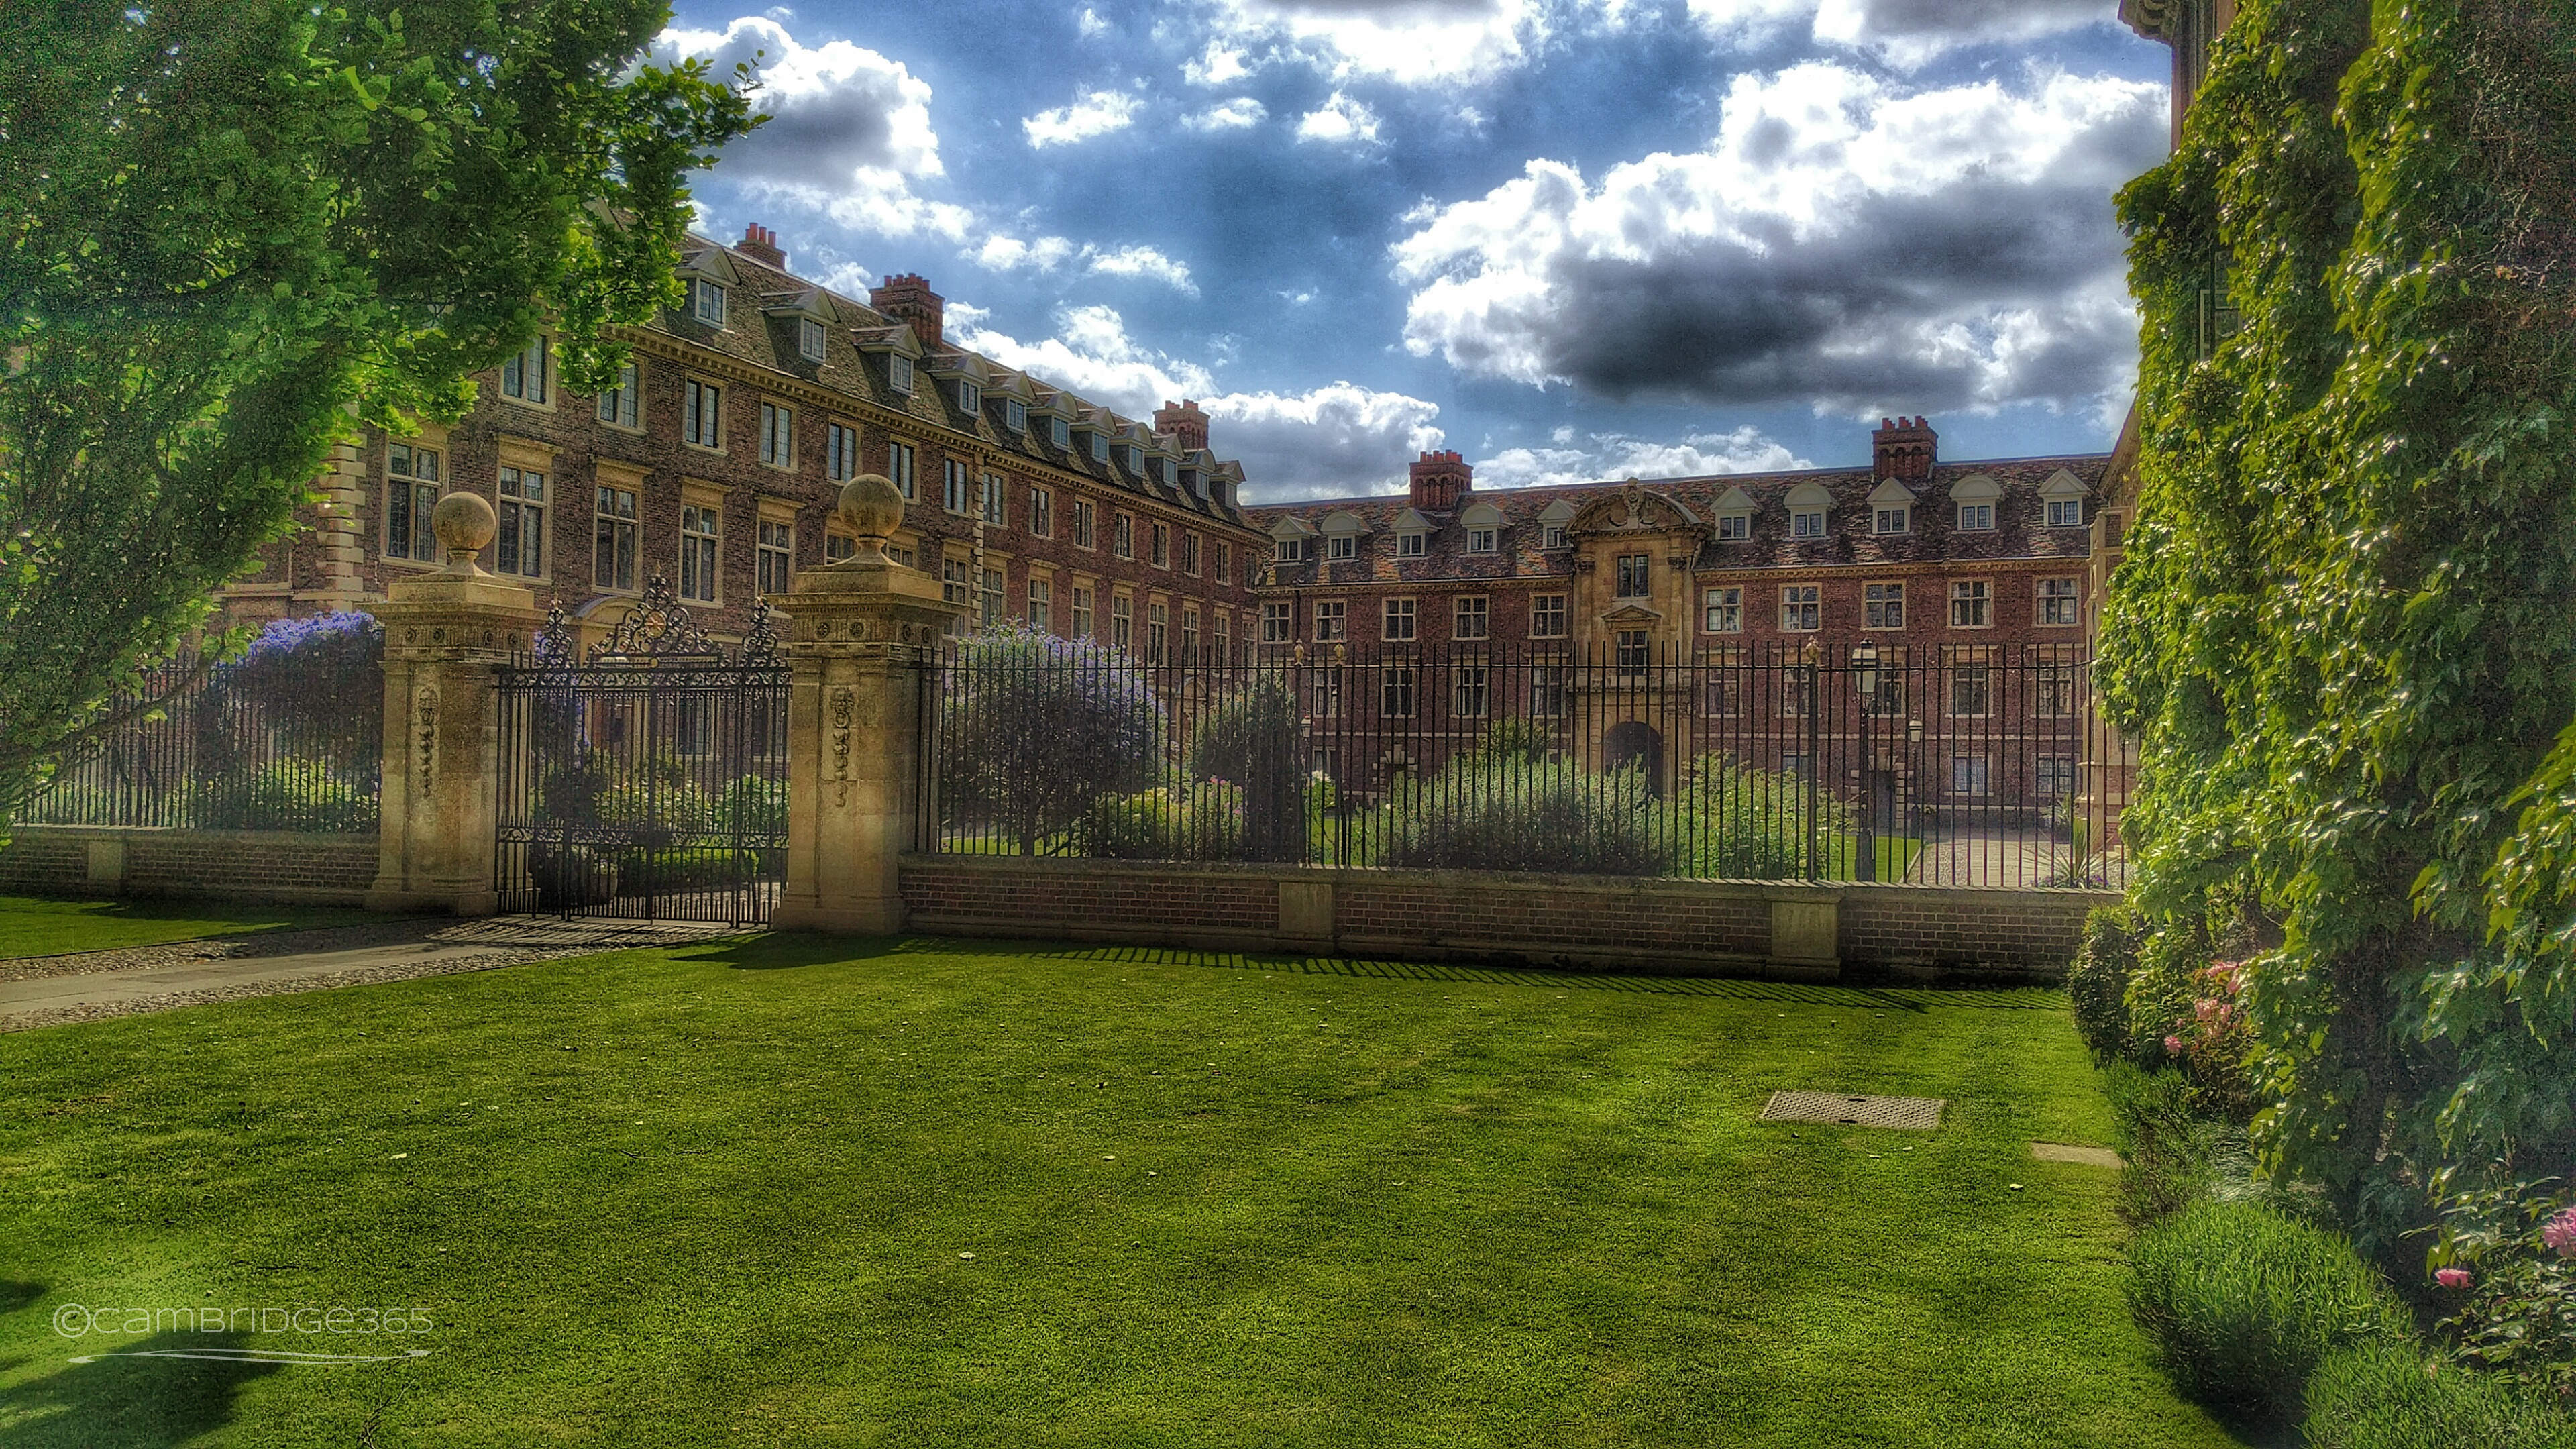 The main gate of St Catharine's College, Cambridge